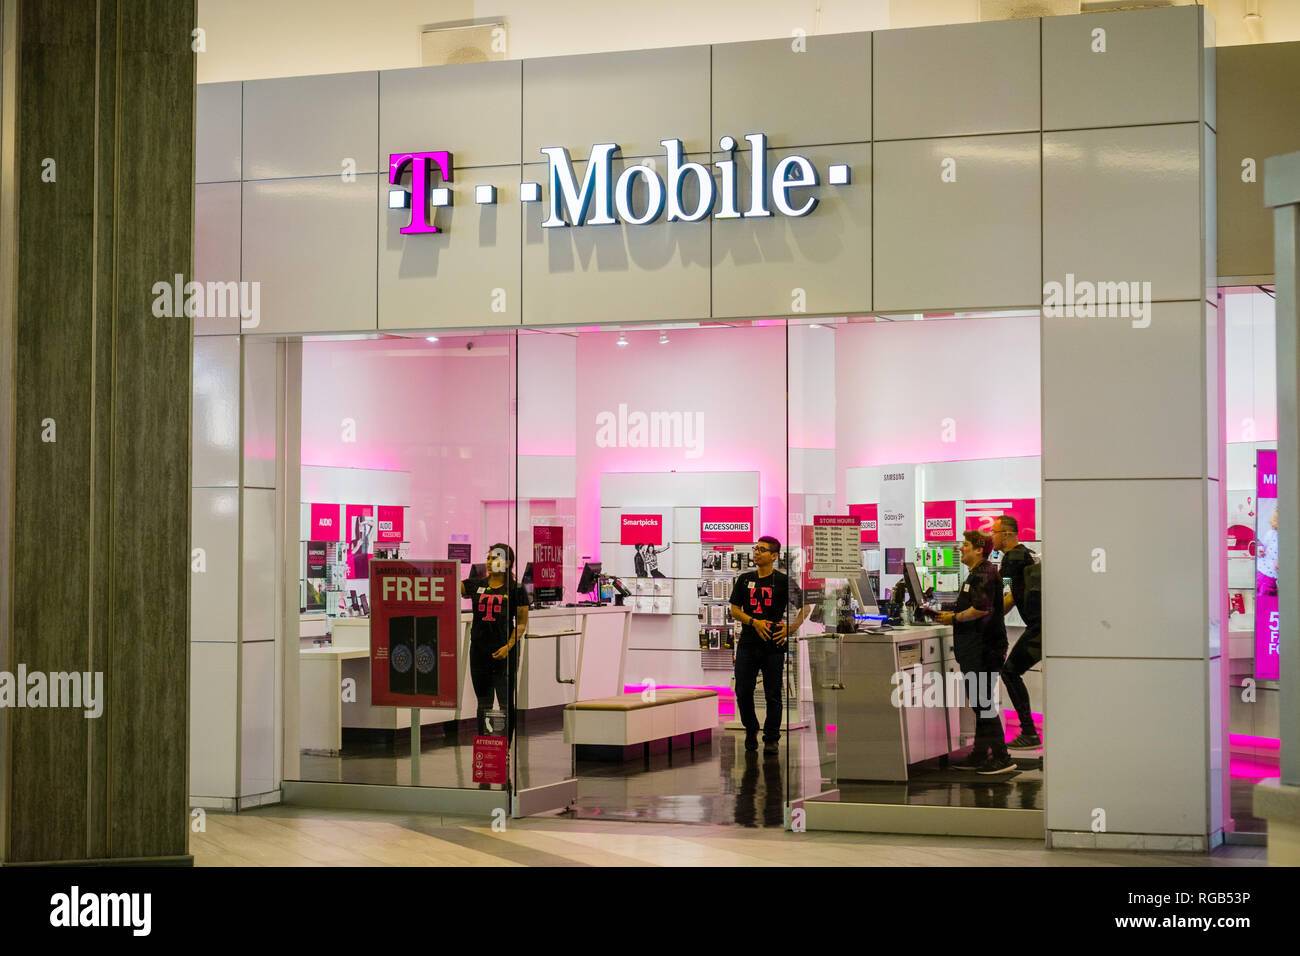 T Mobile Winkel Maastricht T Mobile Mobile Phone Store In Stock Photos T Mobile Mobile